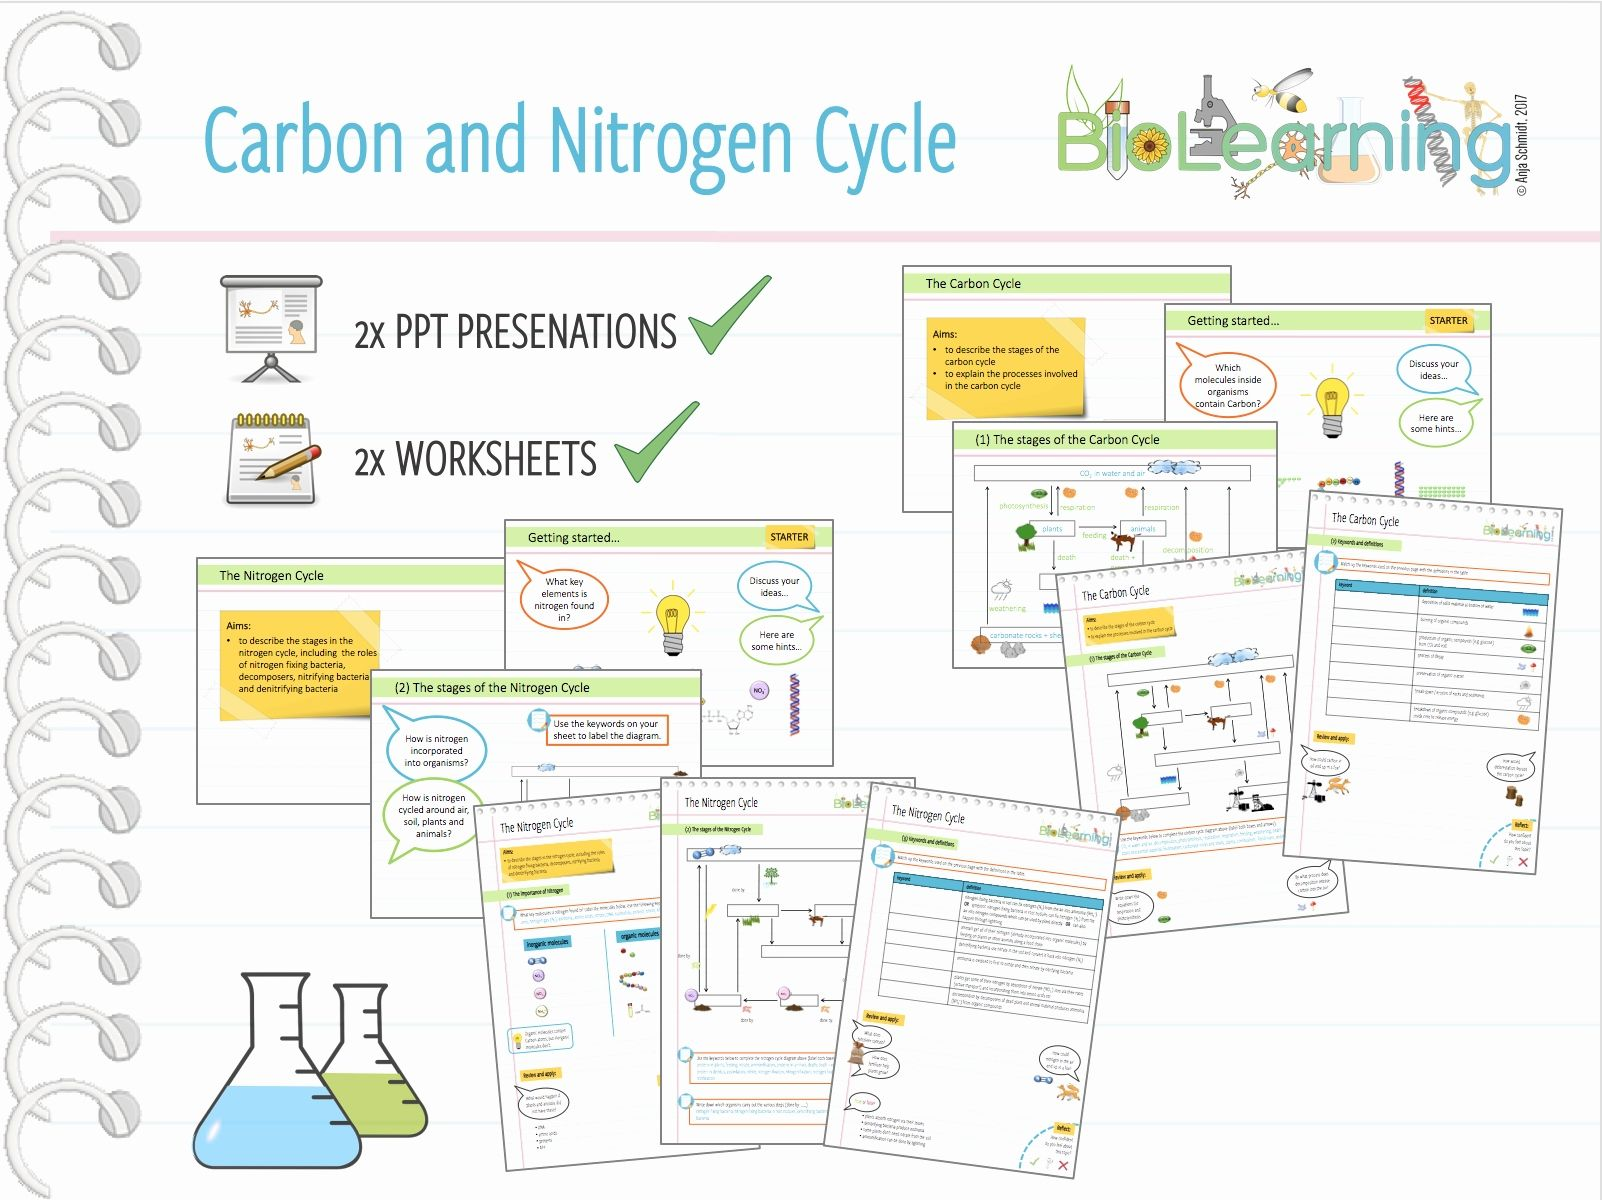 hight resolution of water carbon and nitrogen cycle worksheet answers nitrogen cycle diagram worksheet inspirationa 4x carbon and nitrogen